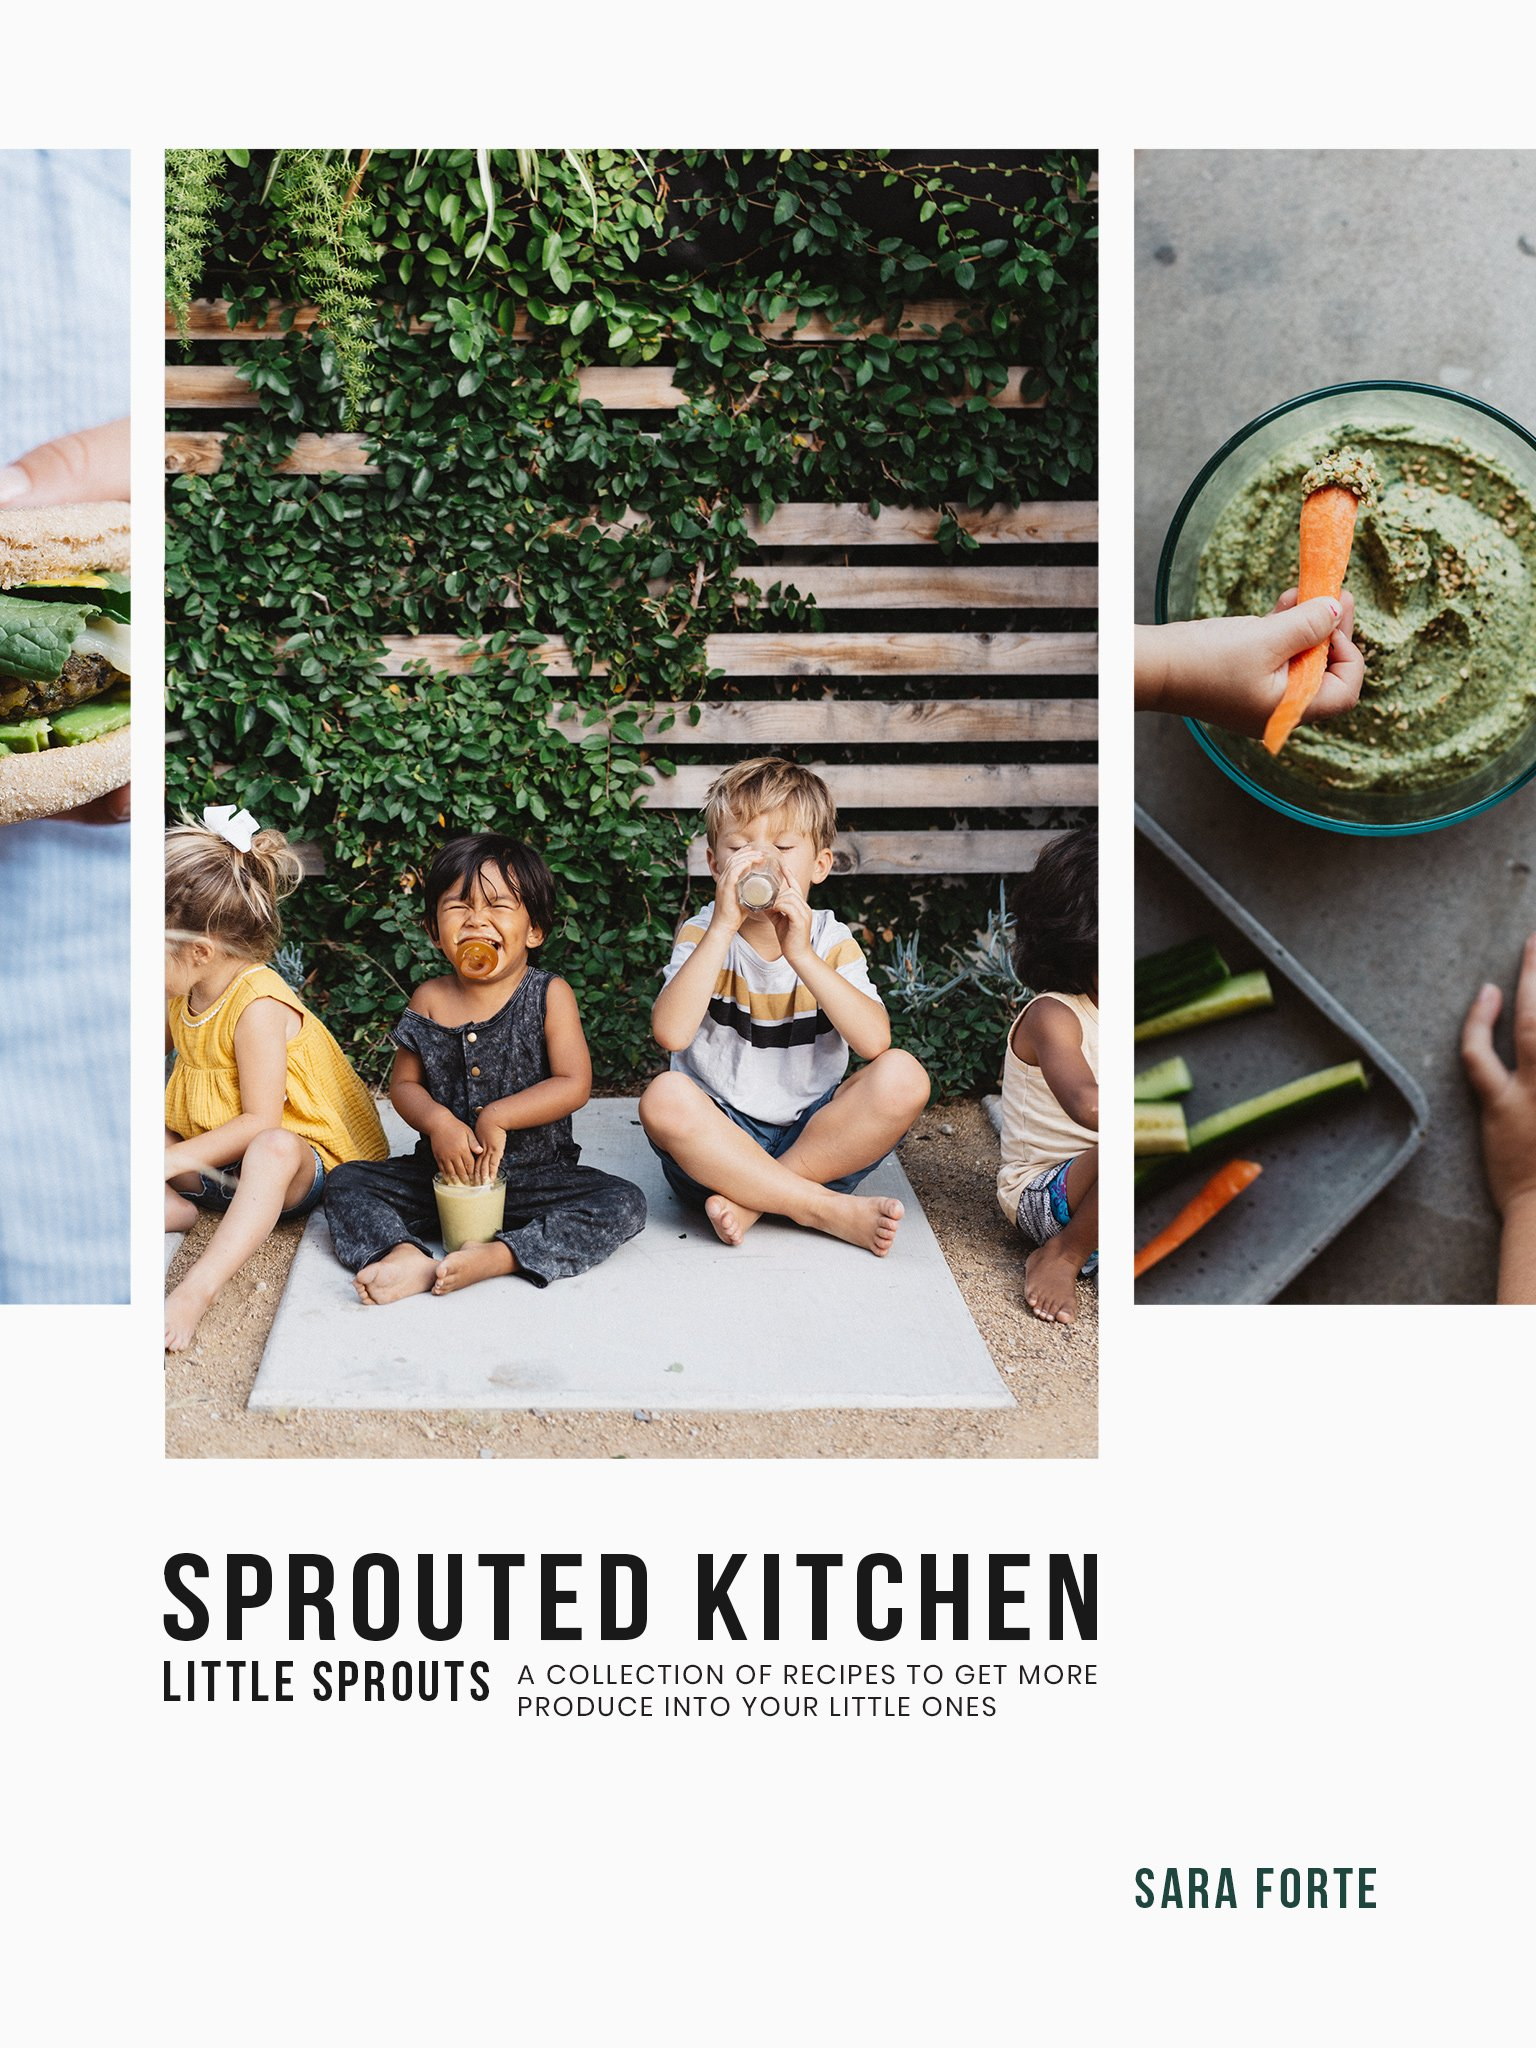 Sprouted Kitchen's Little Sprouts